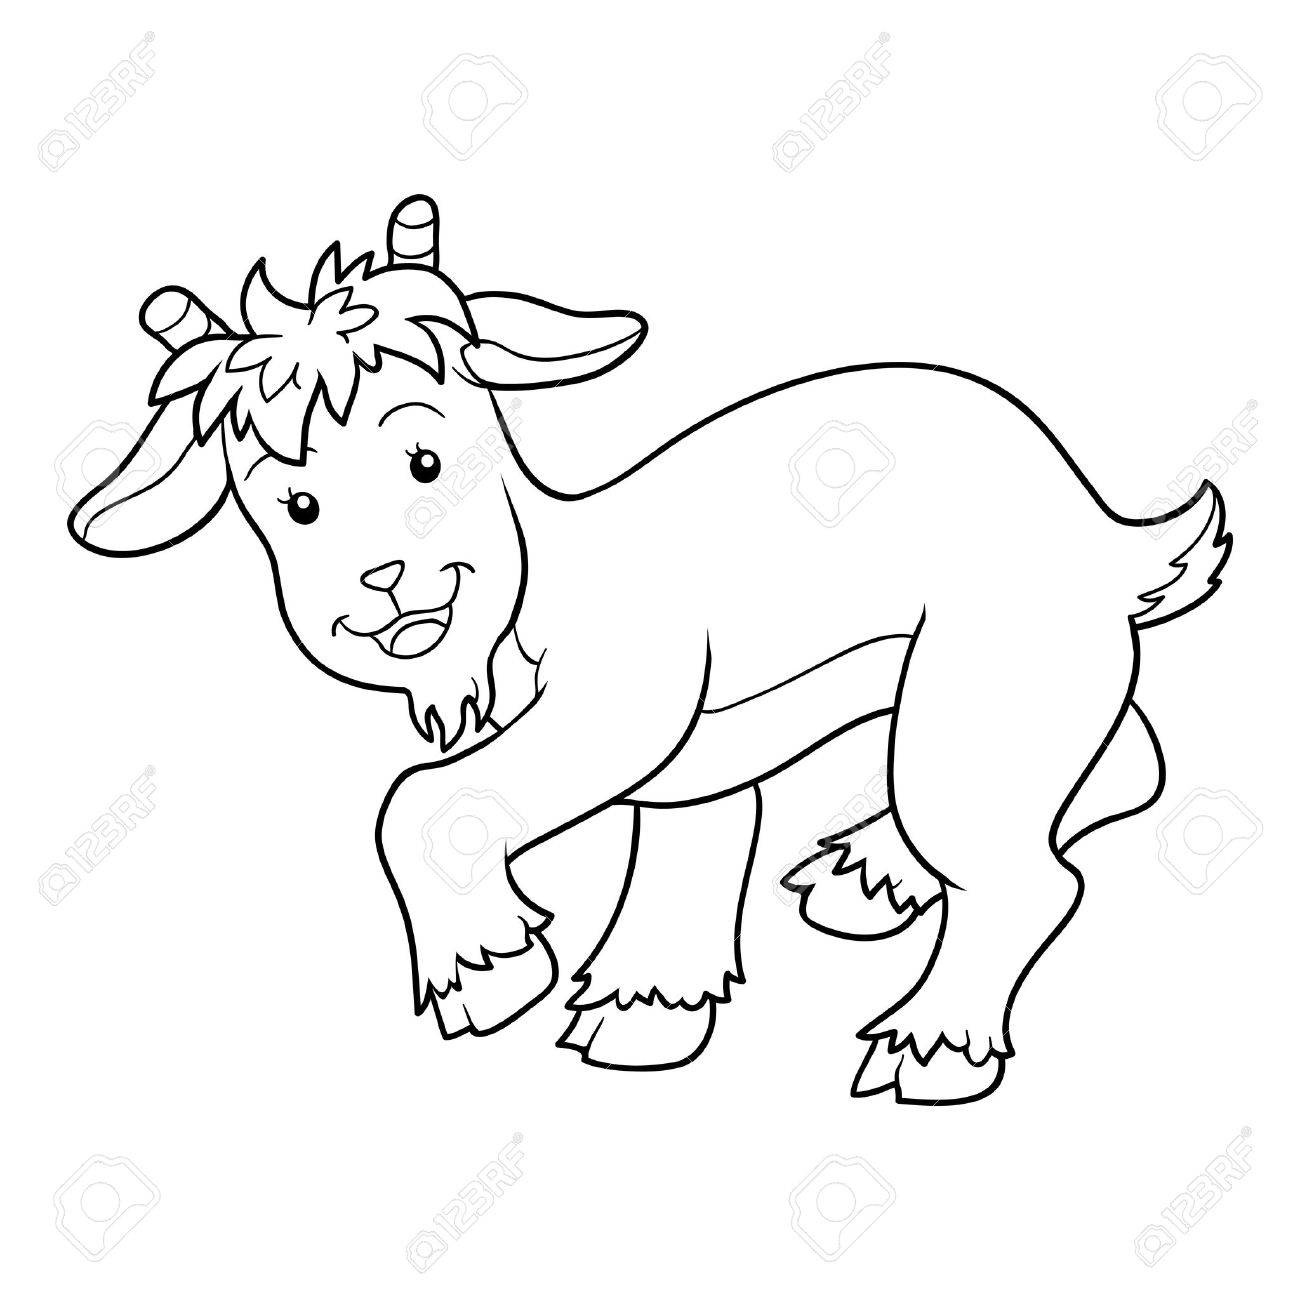 Coloring pictures goat - Game For Children Coloring Book Goat Stock Vector 40774345